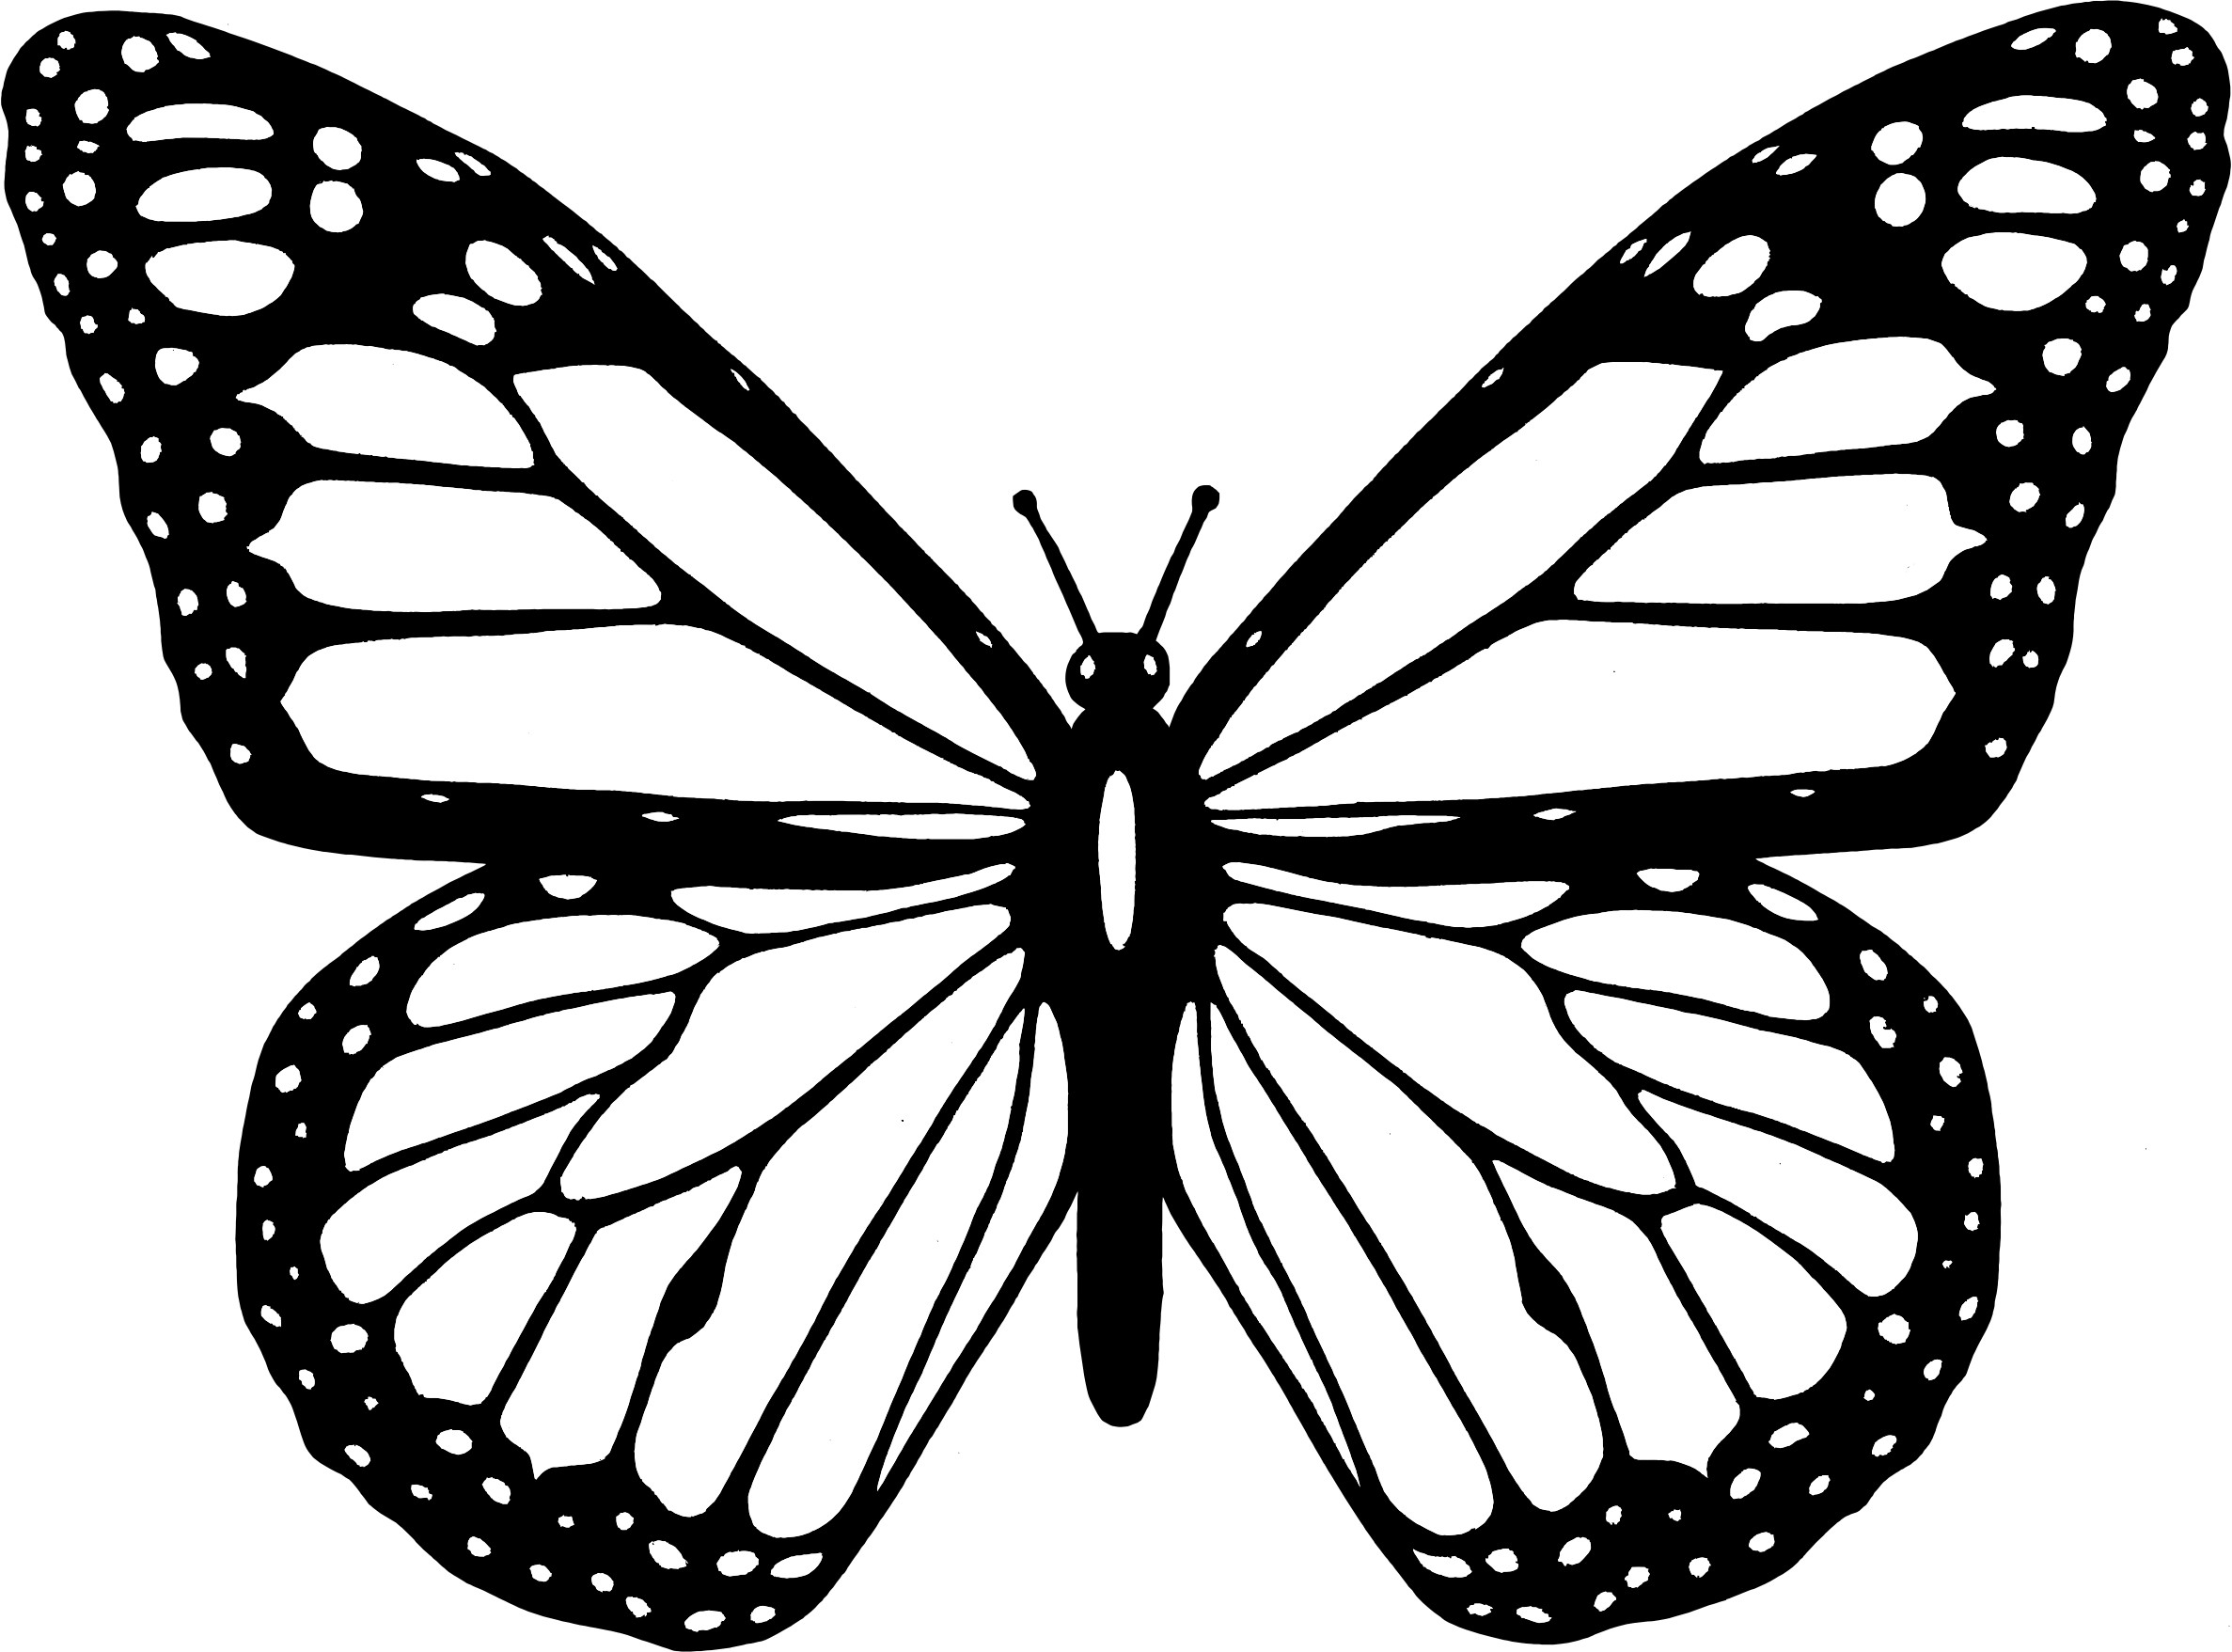 Monarch butterfly Coloring Pages  to Print 16n - Free For Children